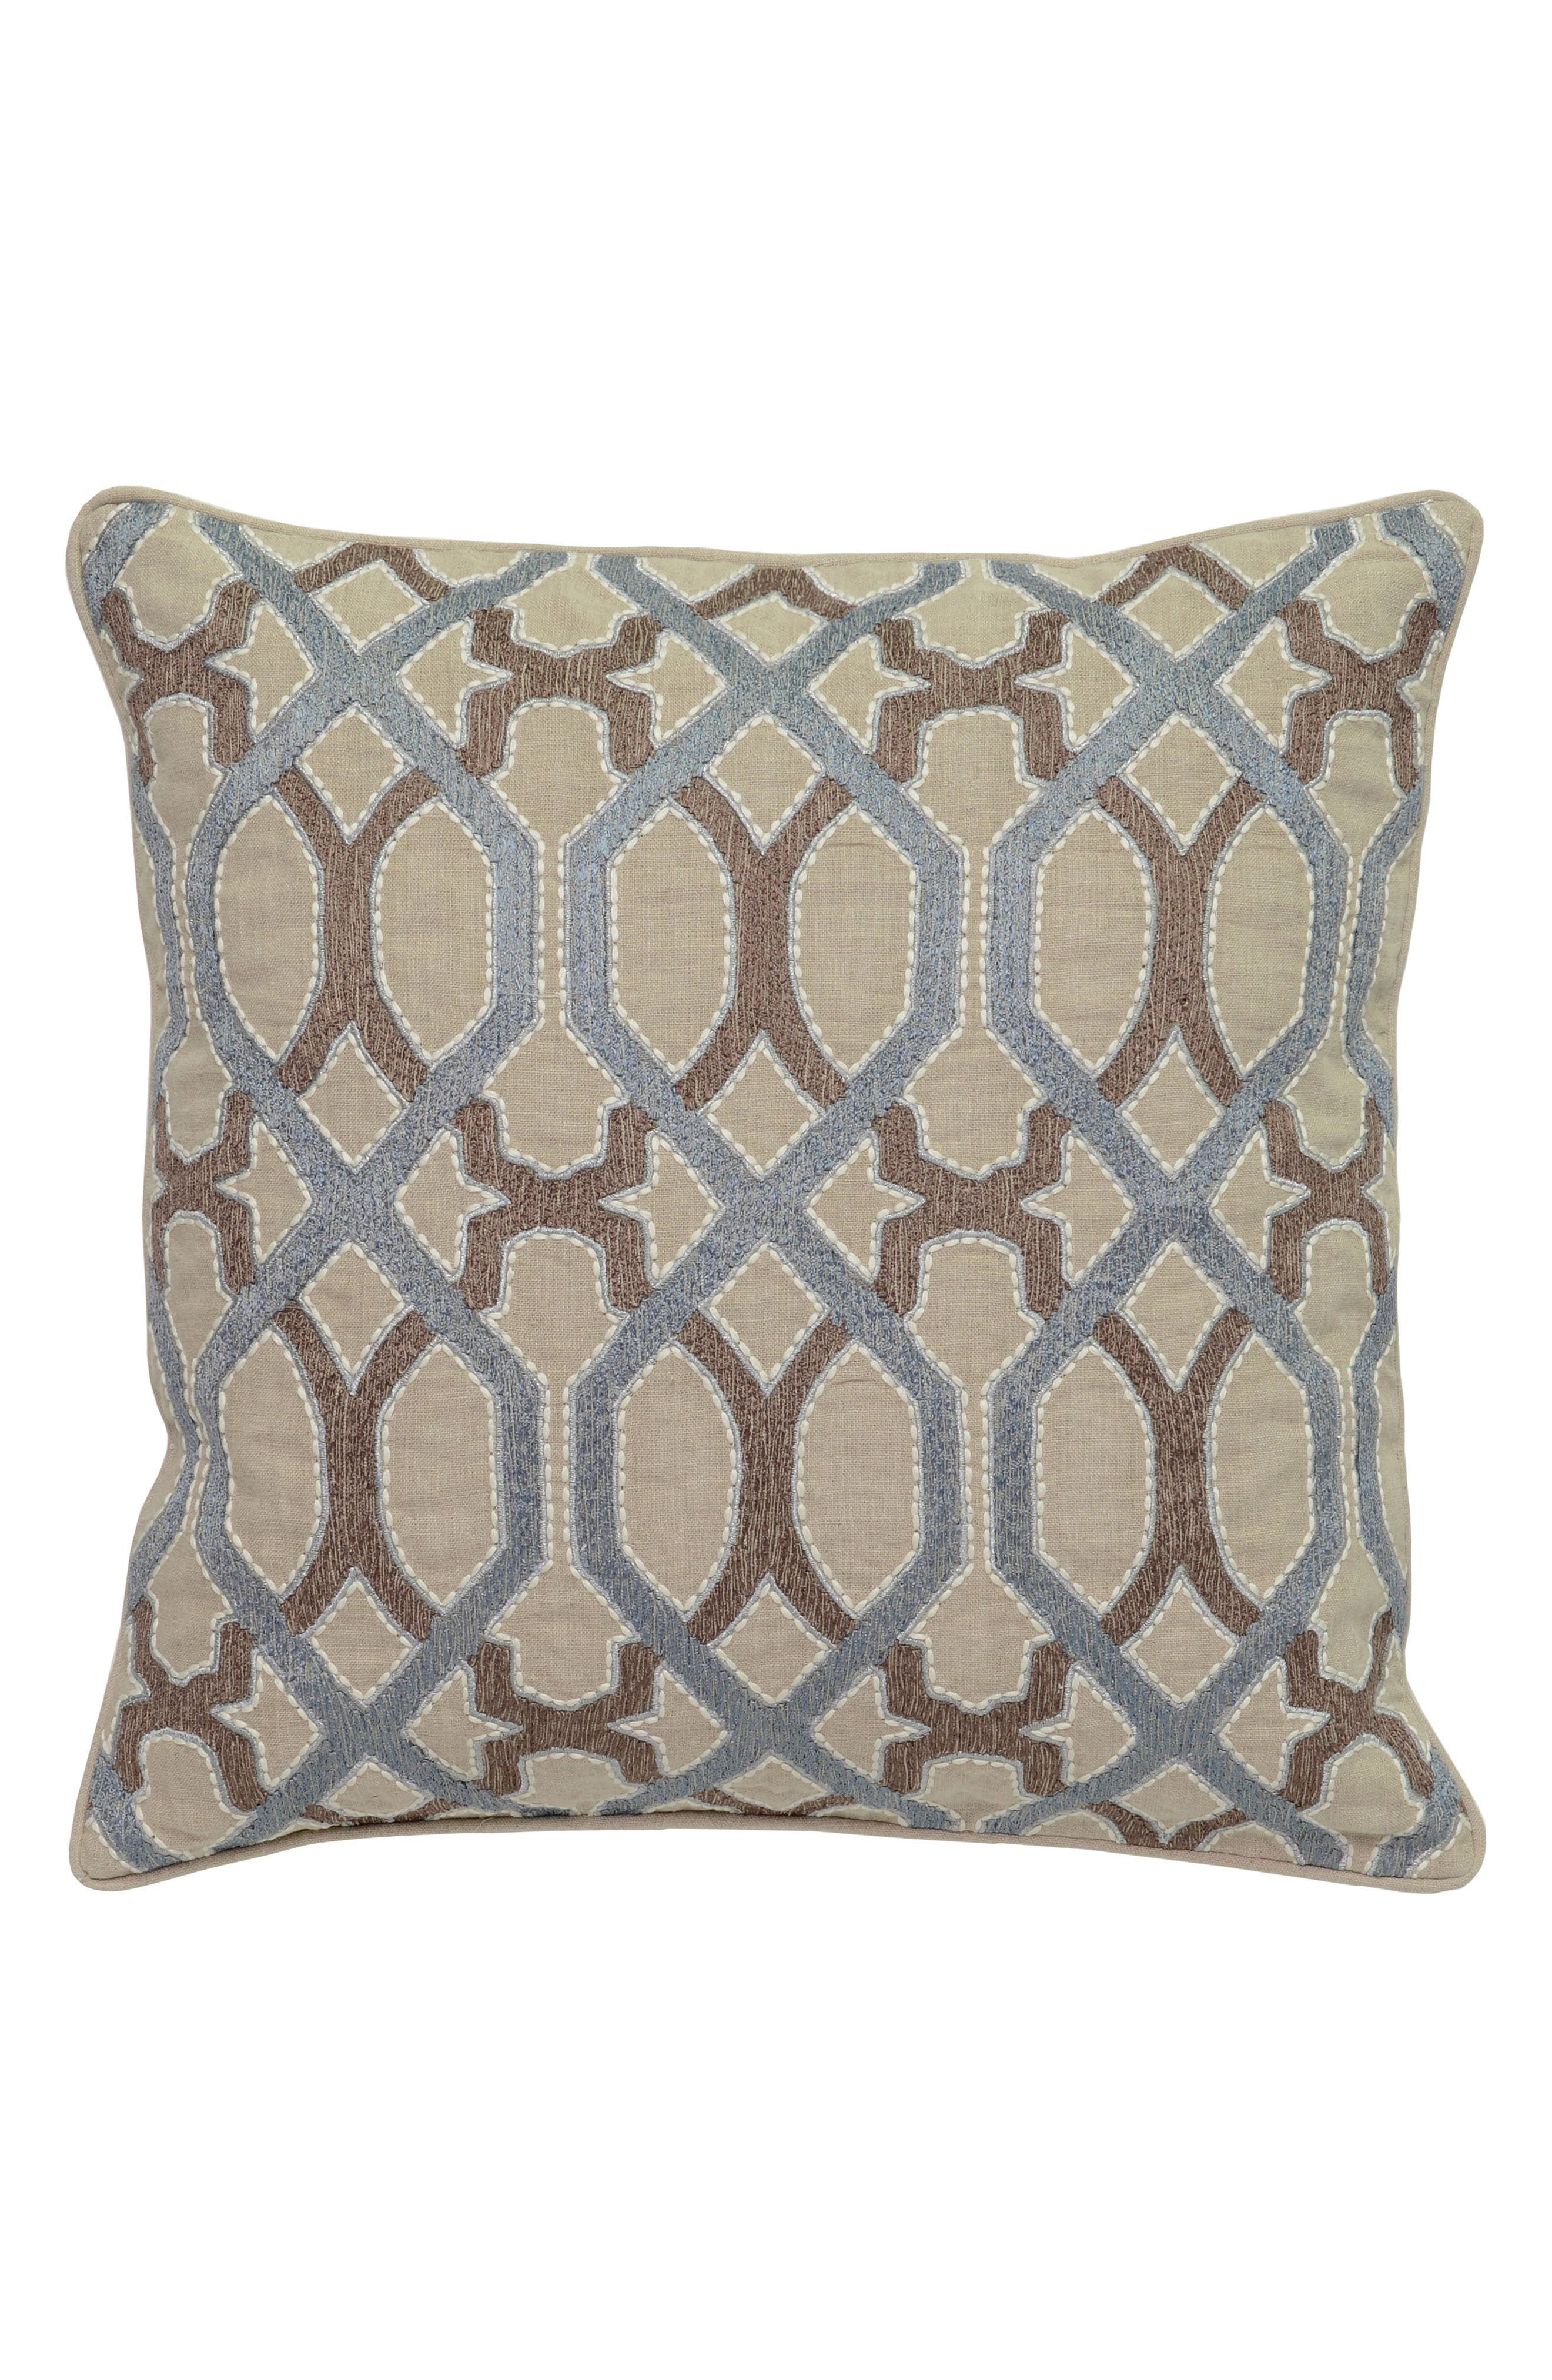 Pearle Accent Pillow,                             Main thumbnail 1, color,                             BLUE/ IVORY